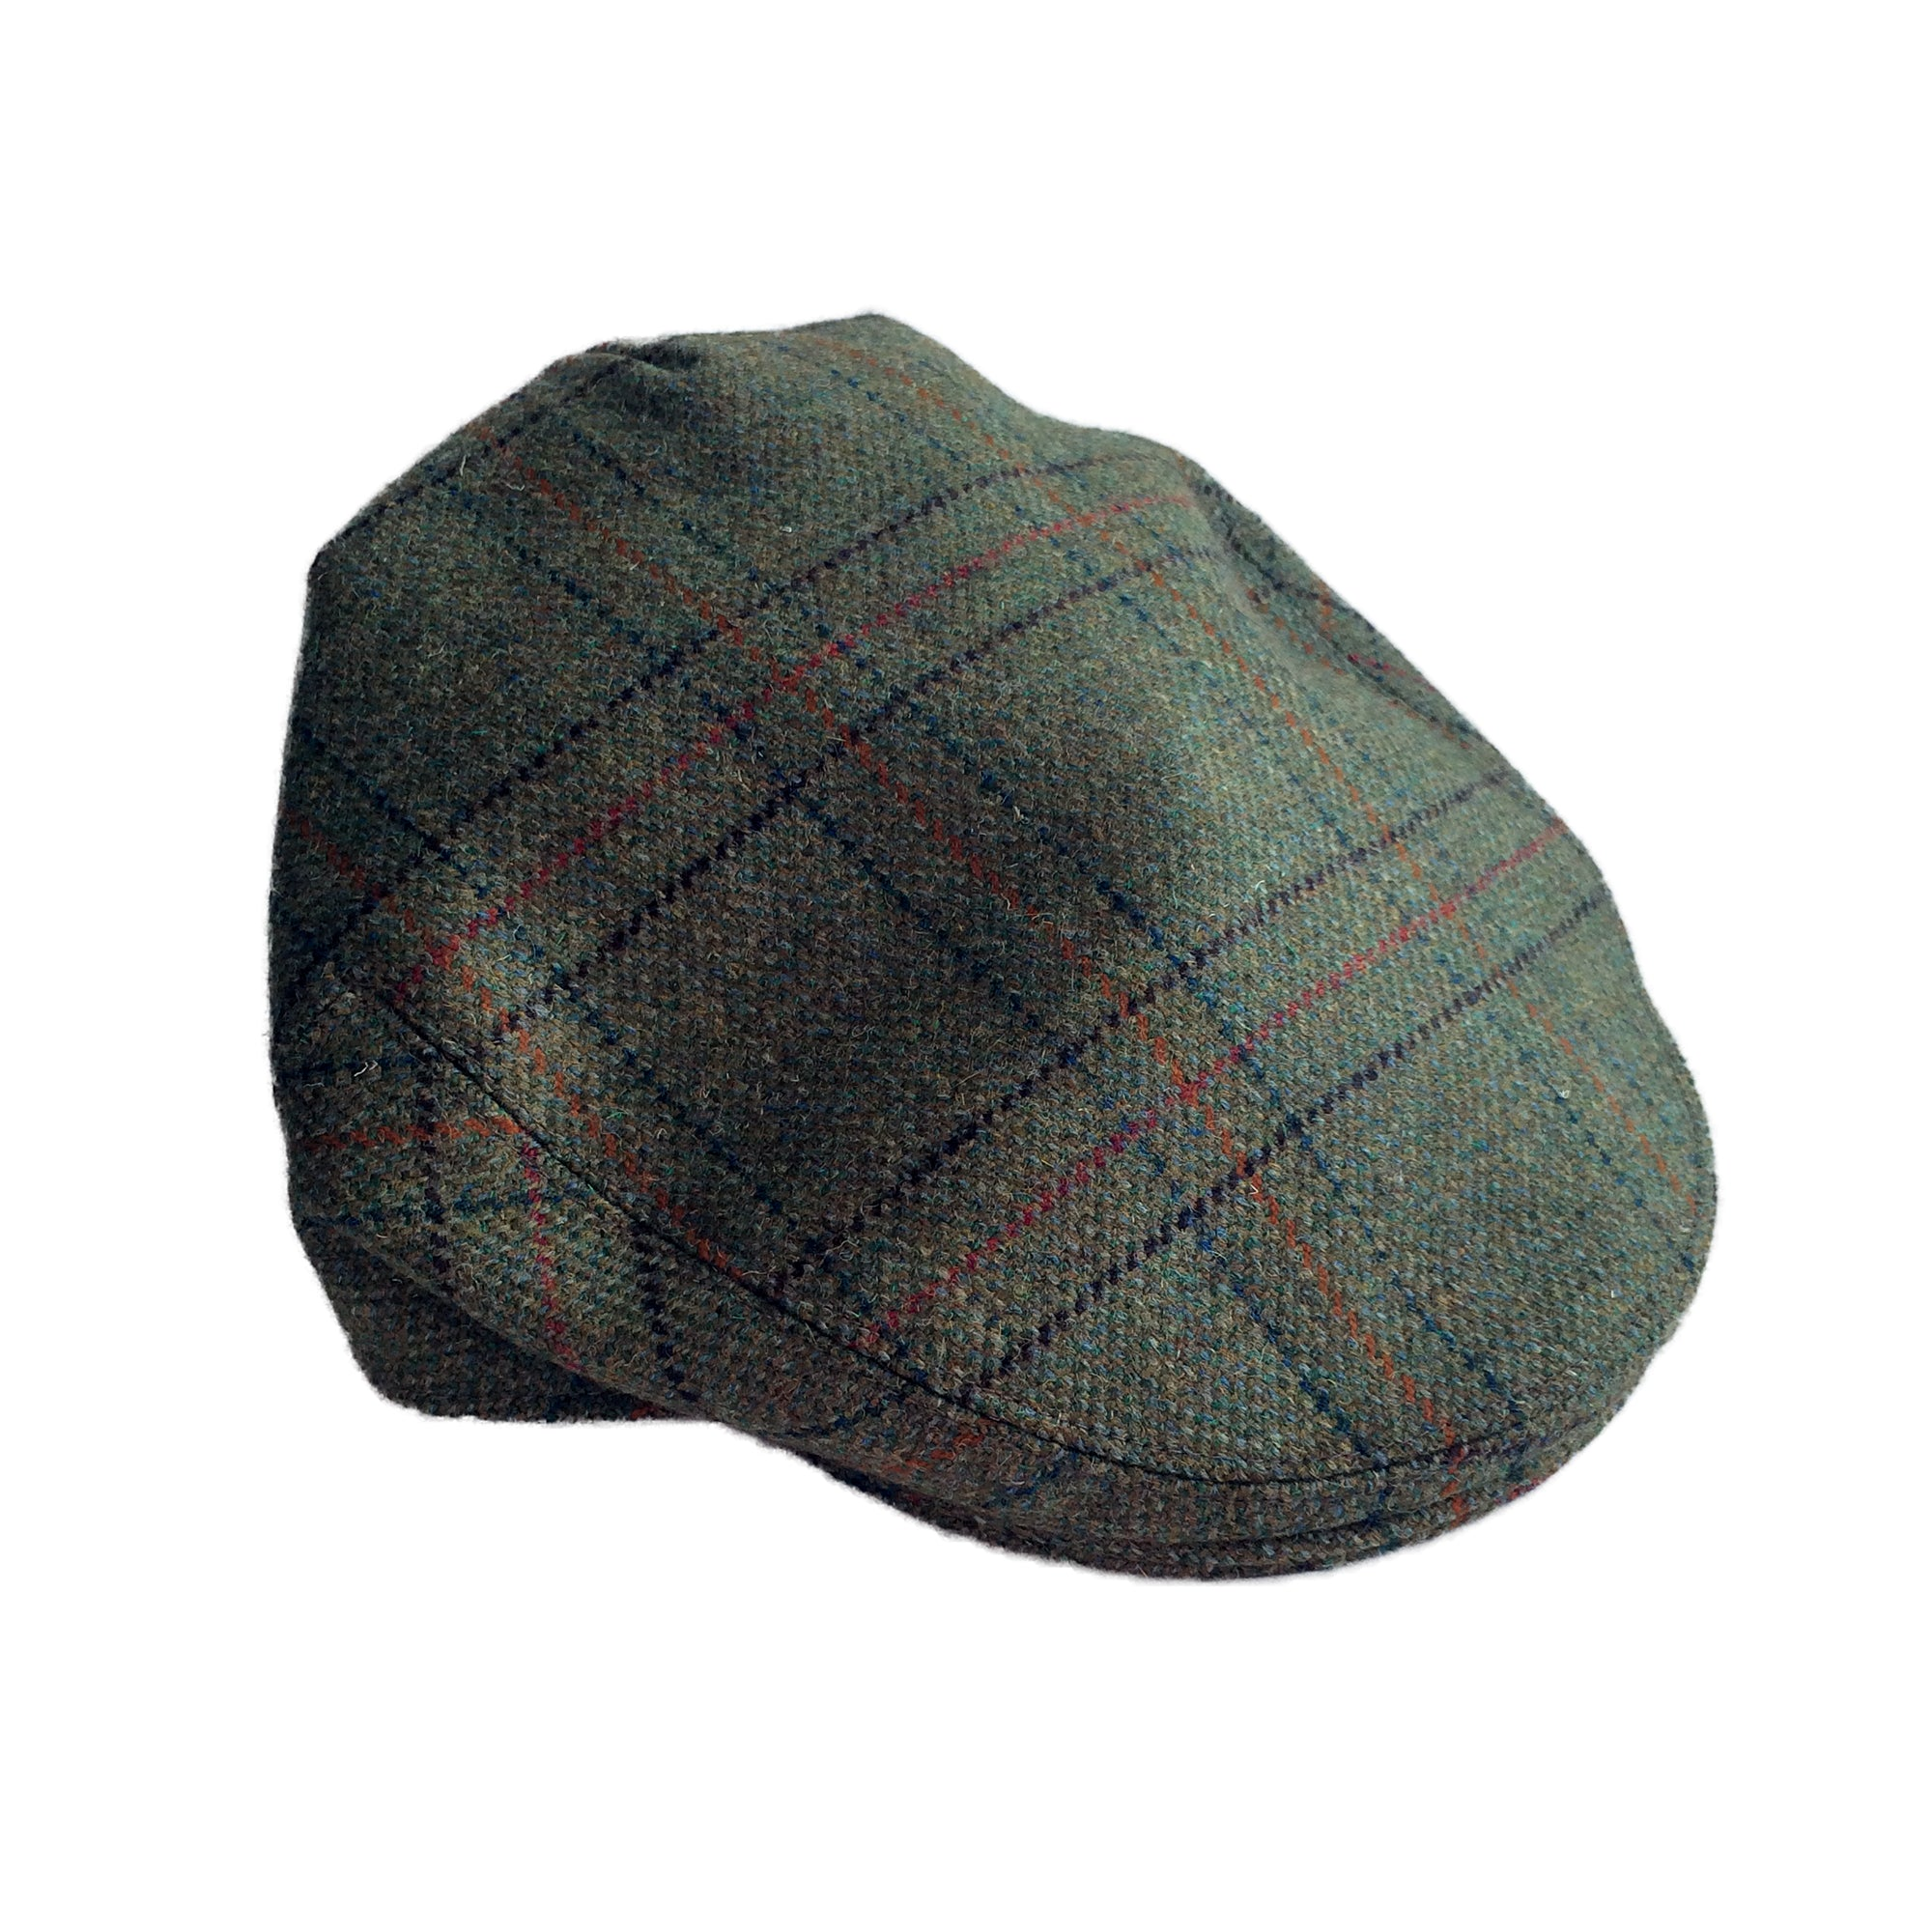 26c81f5a7cf Beaver Countrywear Hats Orange Check Tweed Flat Cap  product tags  -  Stuarts Outdoor